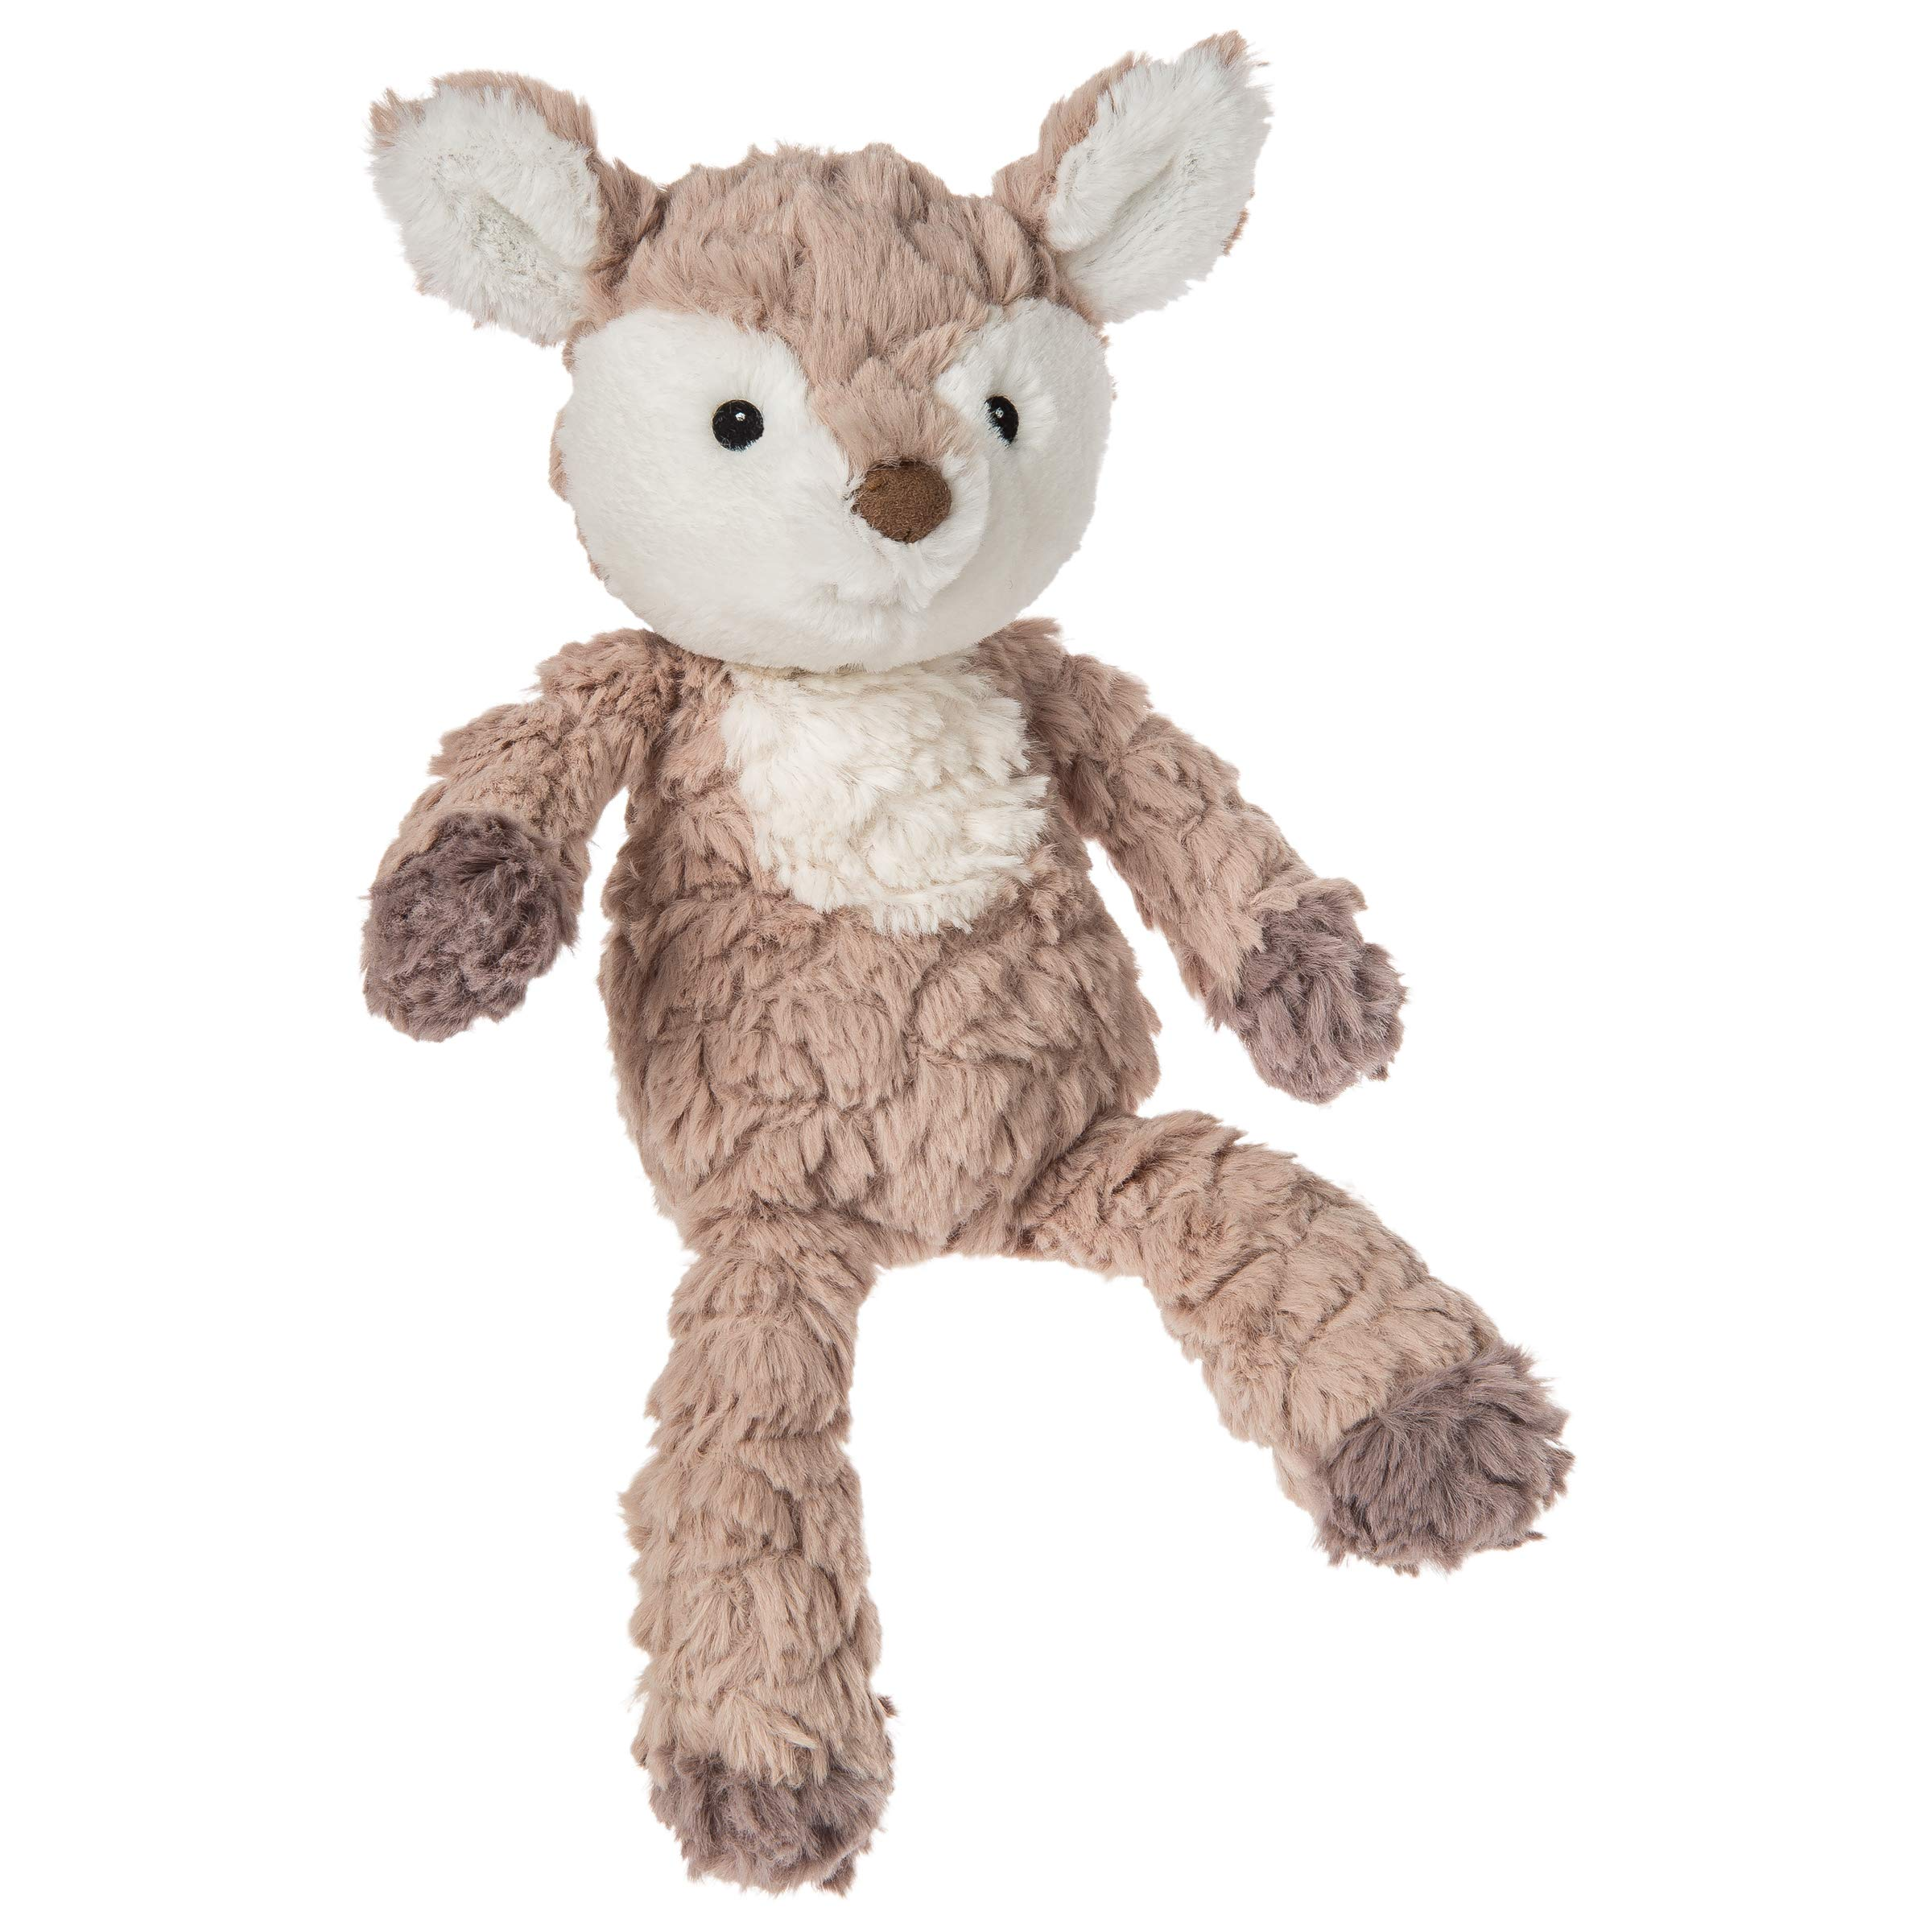 Mary Meyer Putty Nursery Stuffed Animal Soft Toy, Fawn, 11-Inches by Mary Meyer